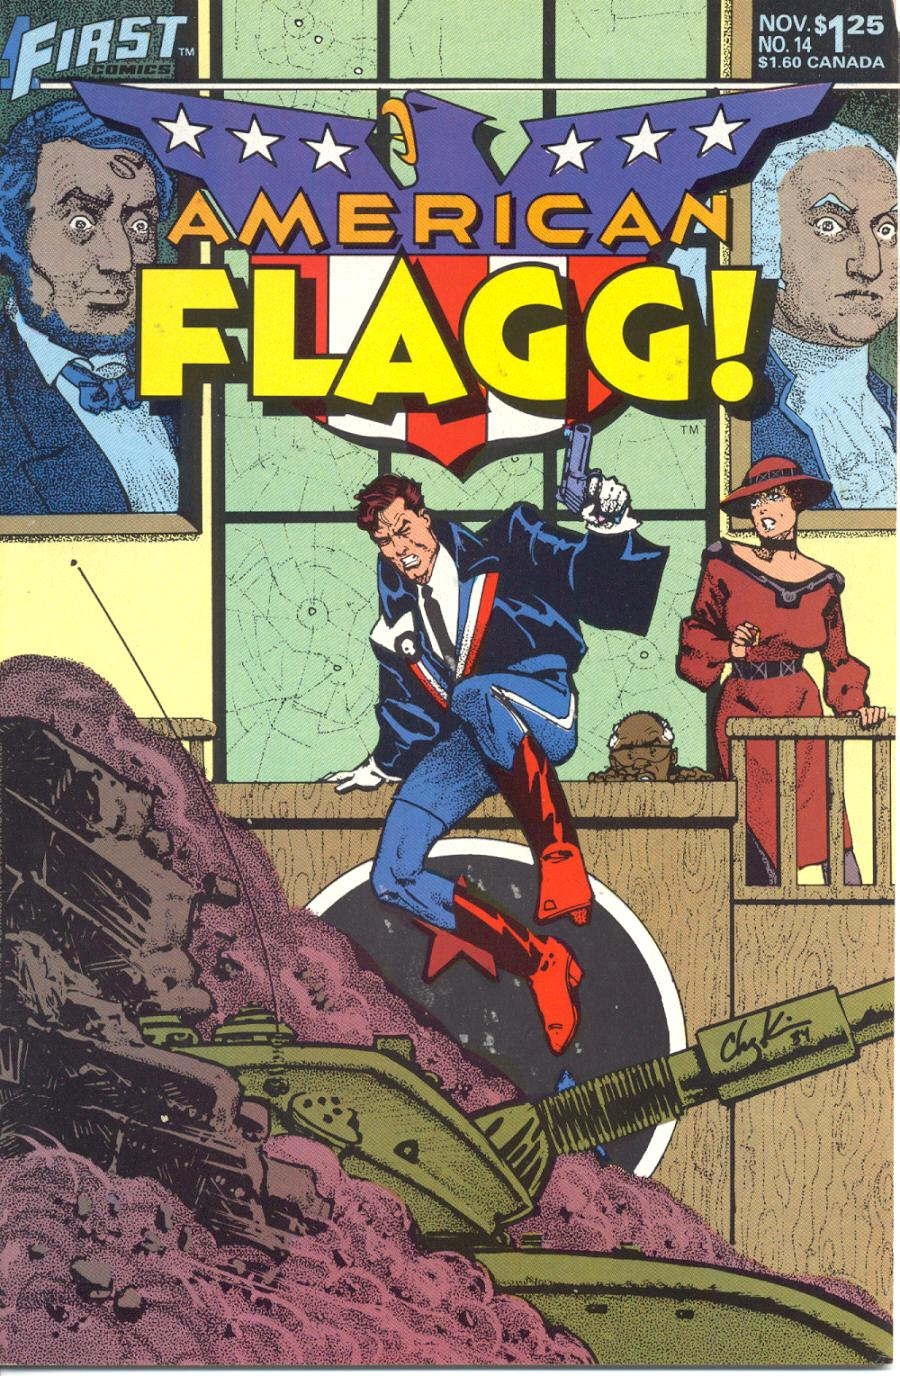 Read online American Flagg! comic -  Issue #14 - 1